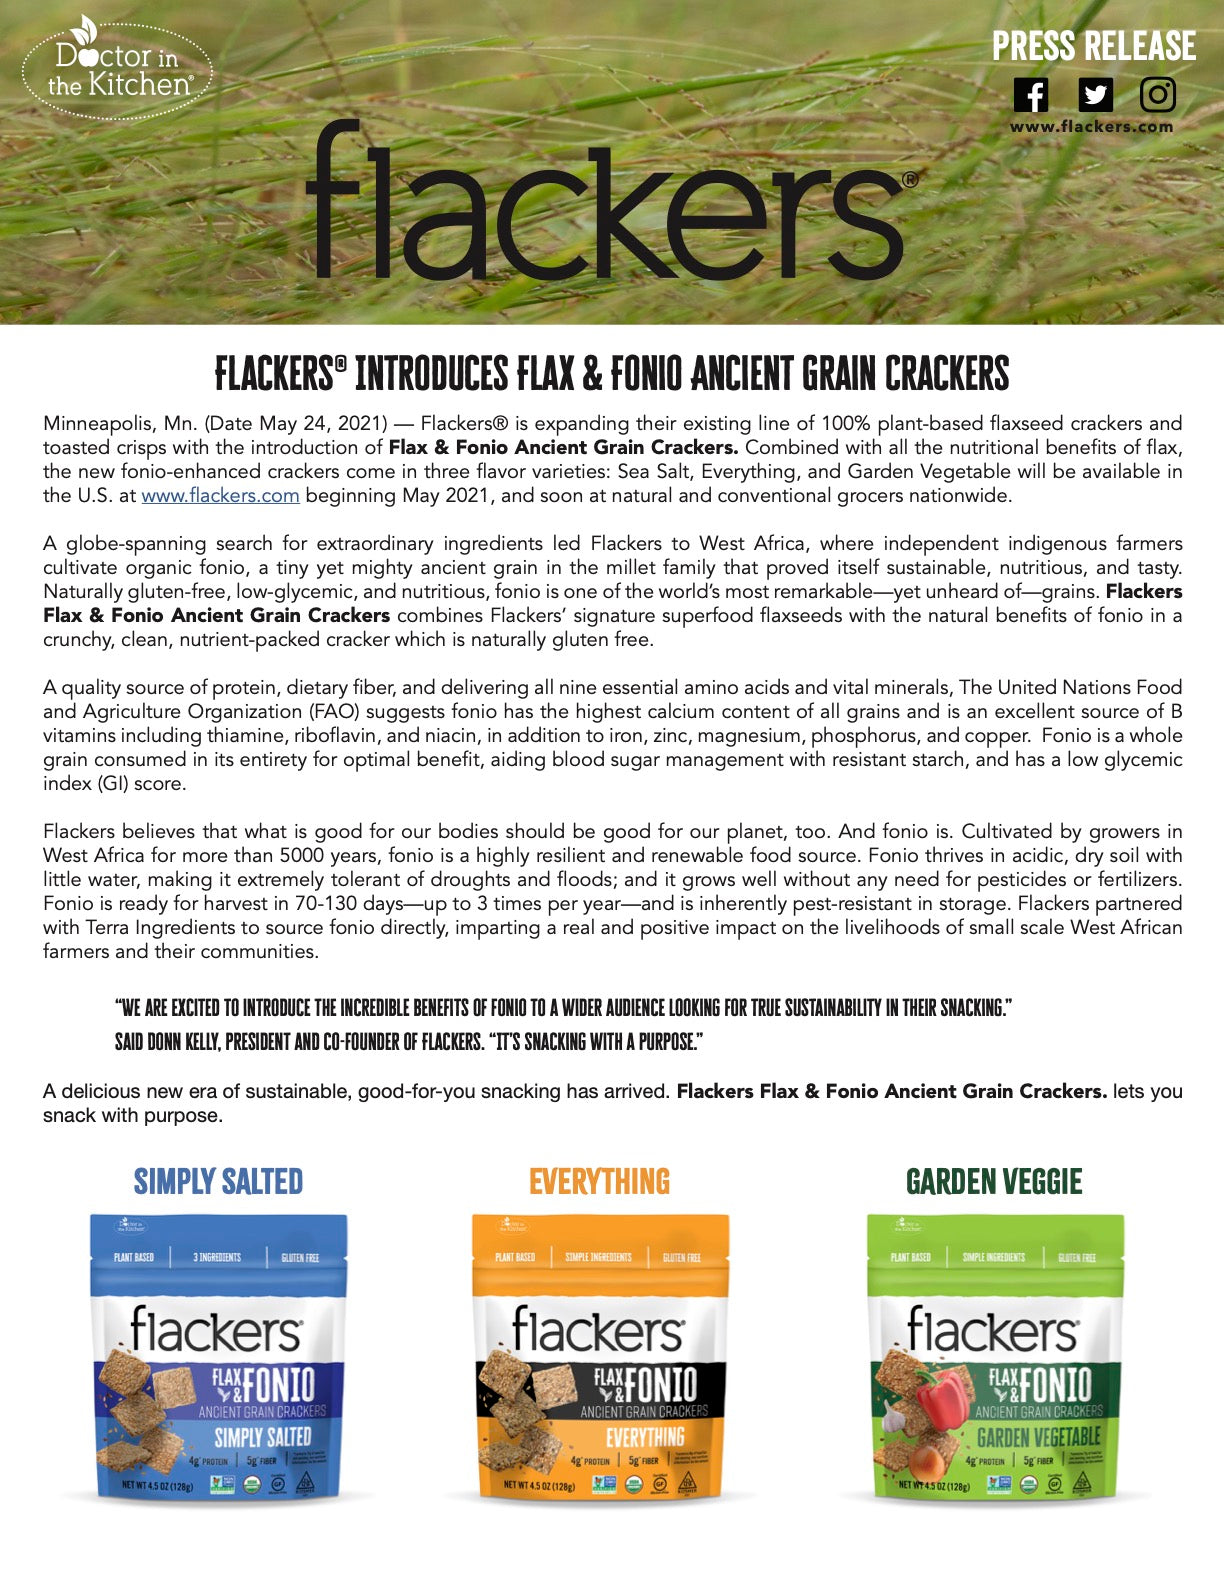 Flackers Flax & Fonio Ancient Grain Crackers press release page 1